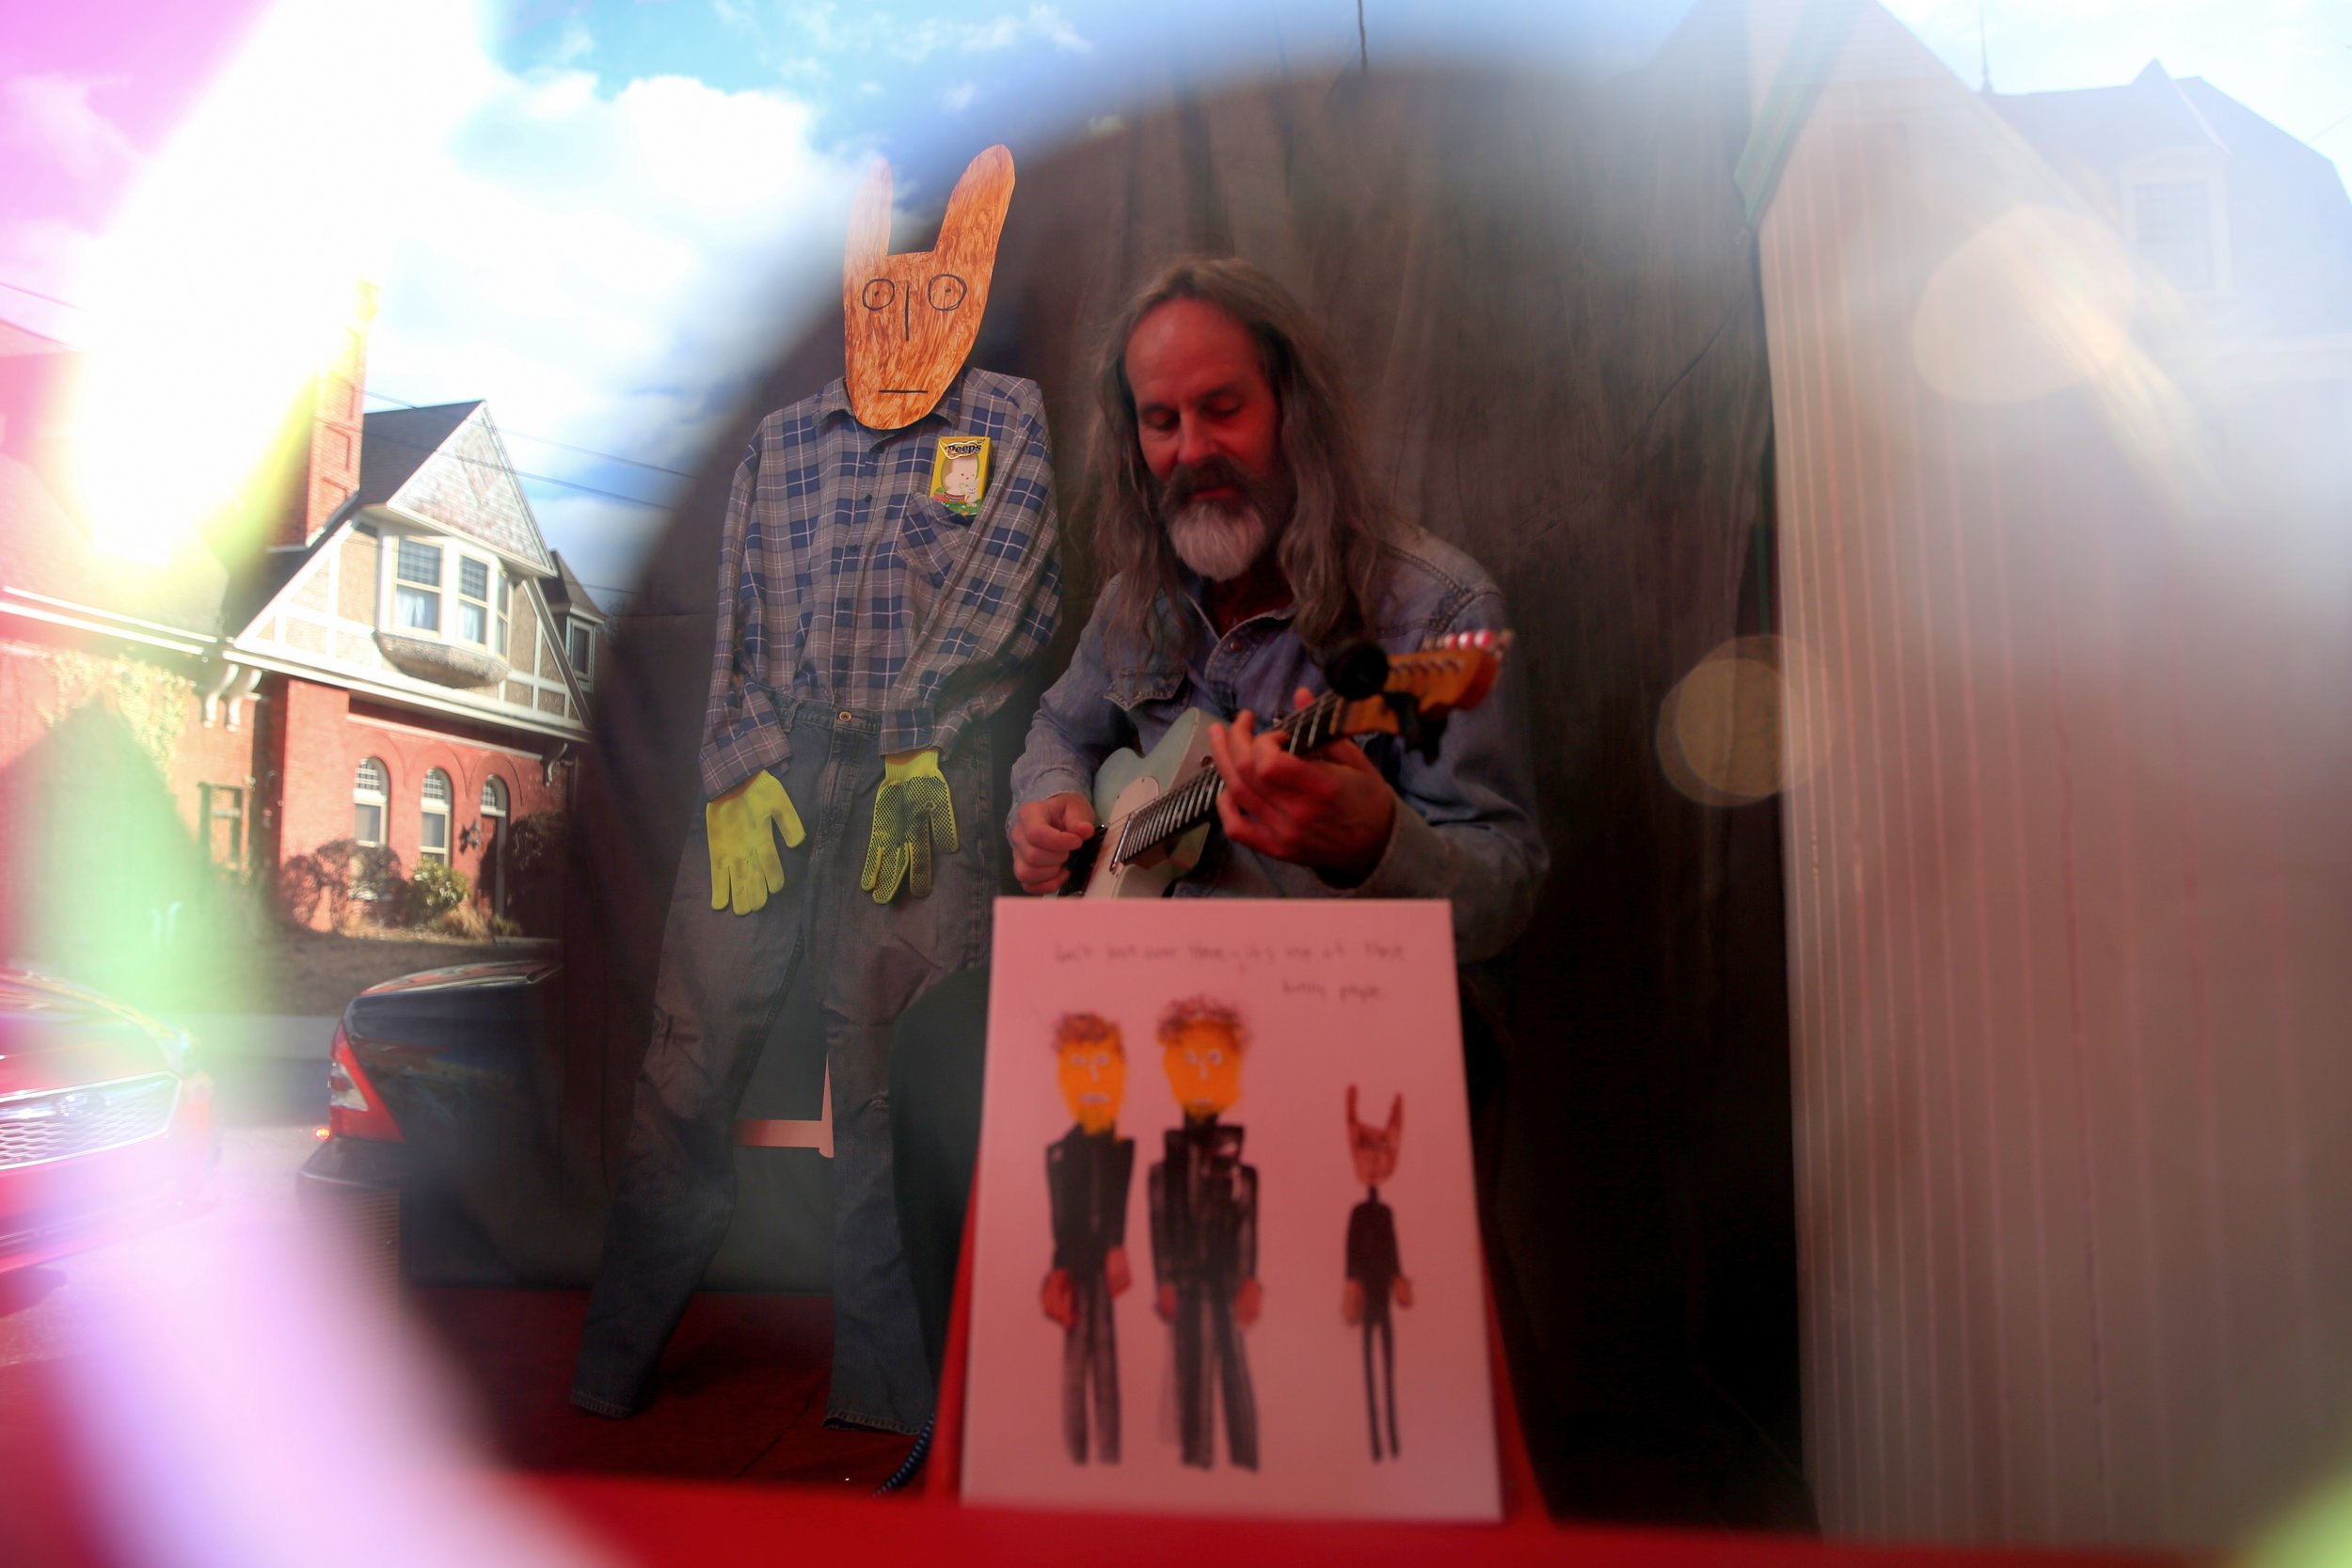 Artist and Musician, Scott Bookman, playing guitar in the peep show next to his artwork.